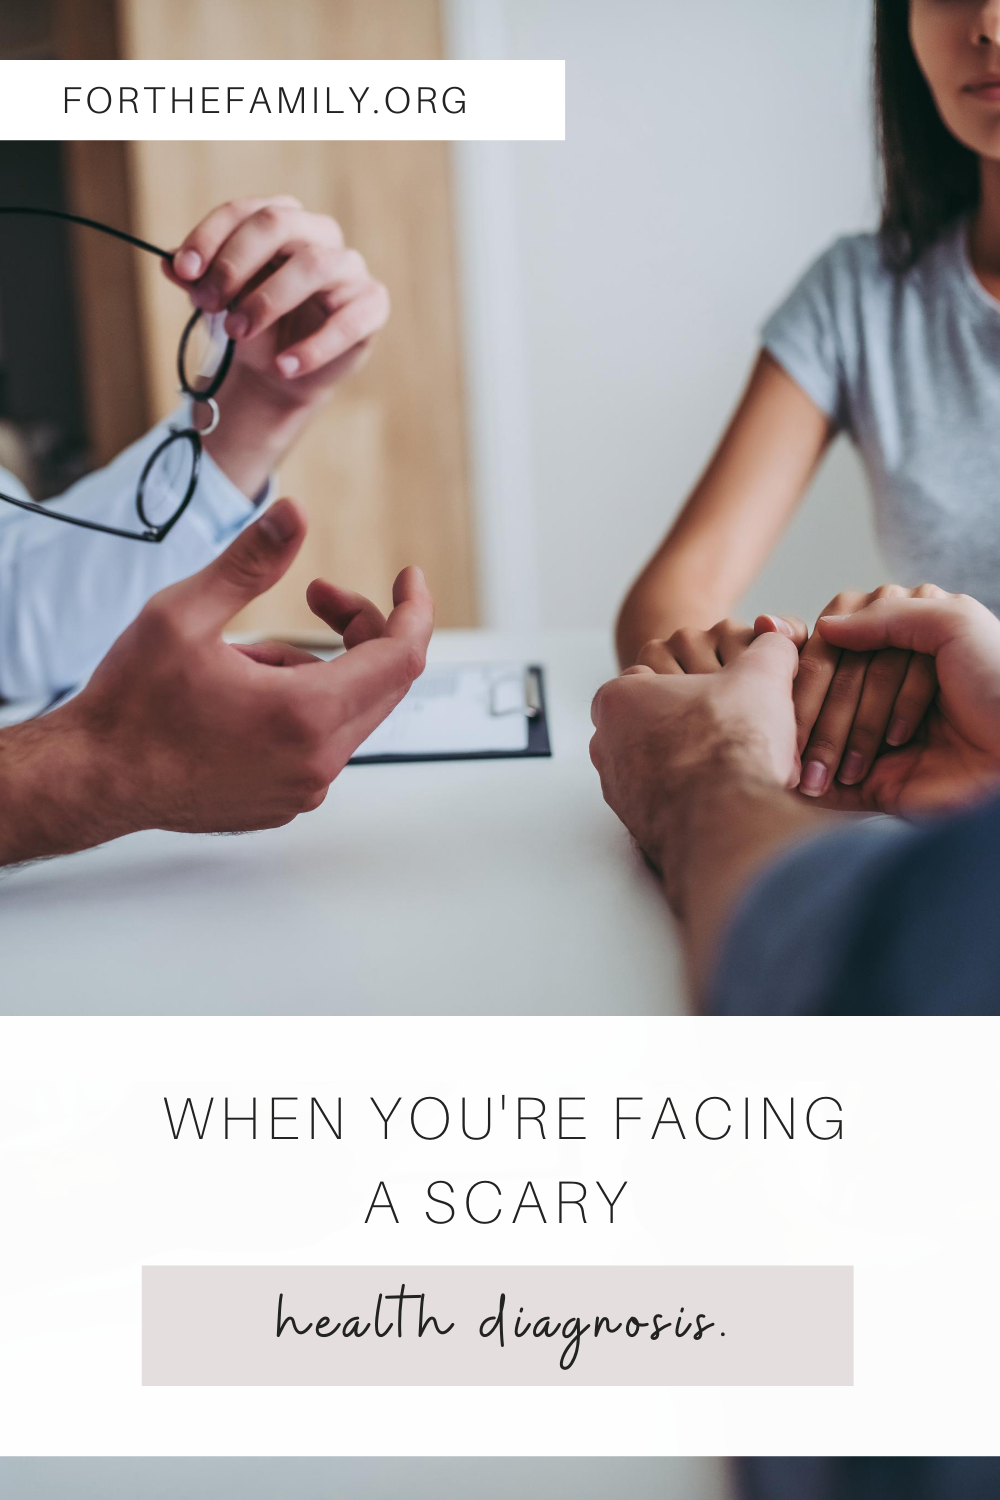 When you receive news that is out of your control, like a bad health diagnosis, it can be so terrifying. We know it's easy to run to the worst-case scenario, but we are meant to run to Jesus!